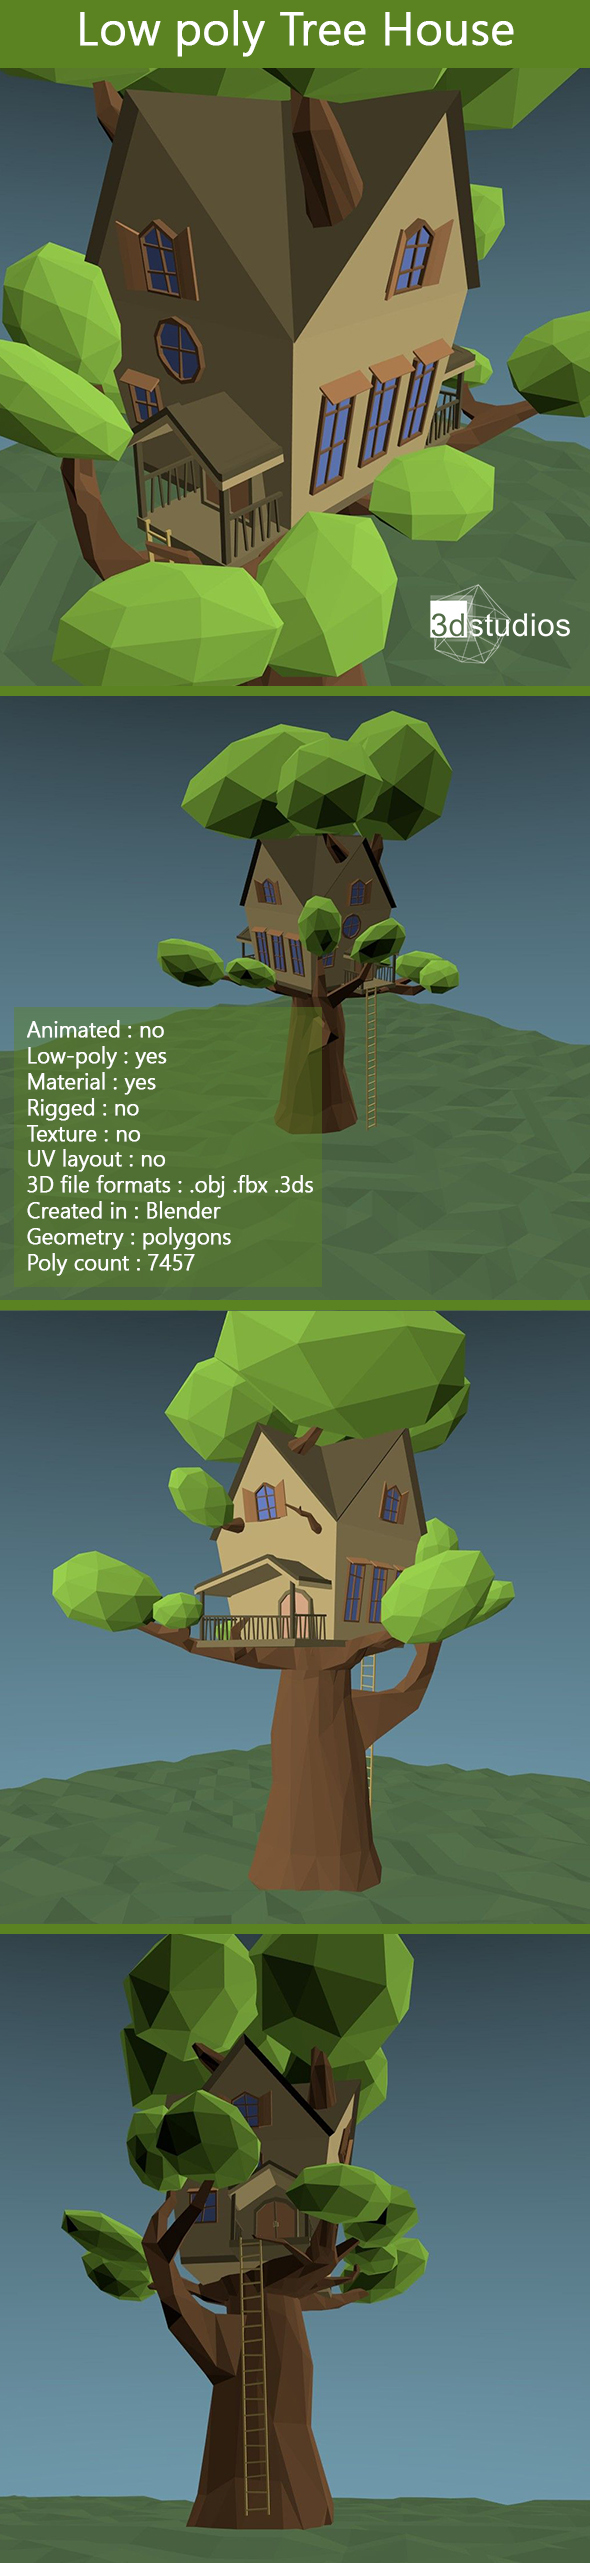 Low Poly Tree House - 3DOcean Item for Sale